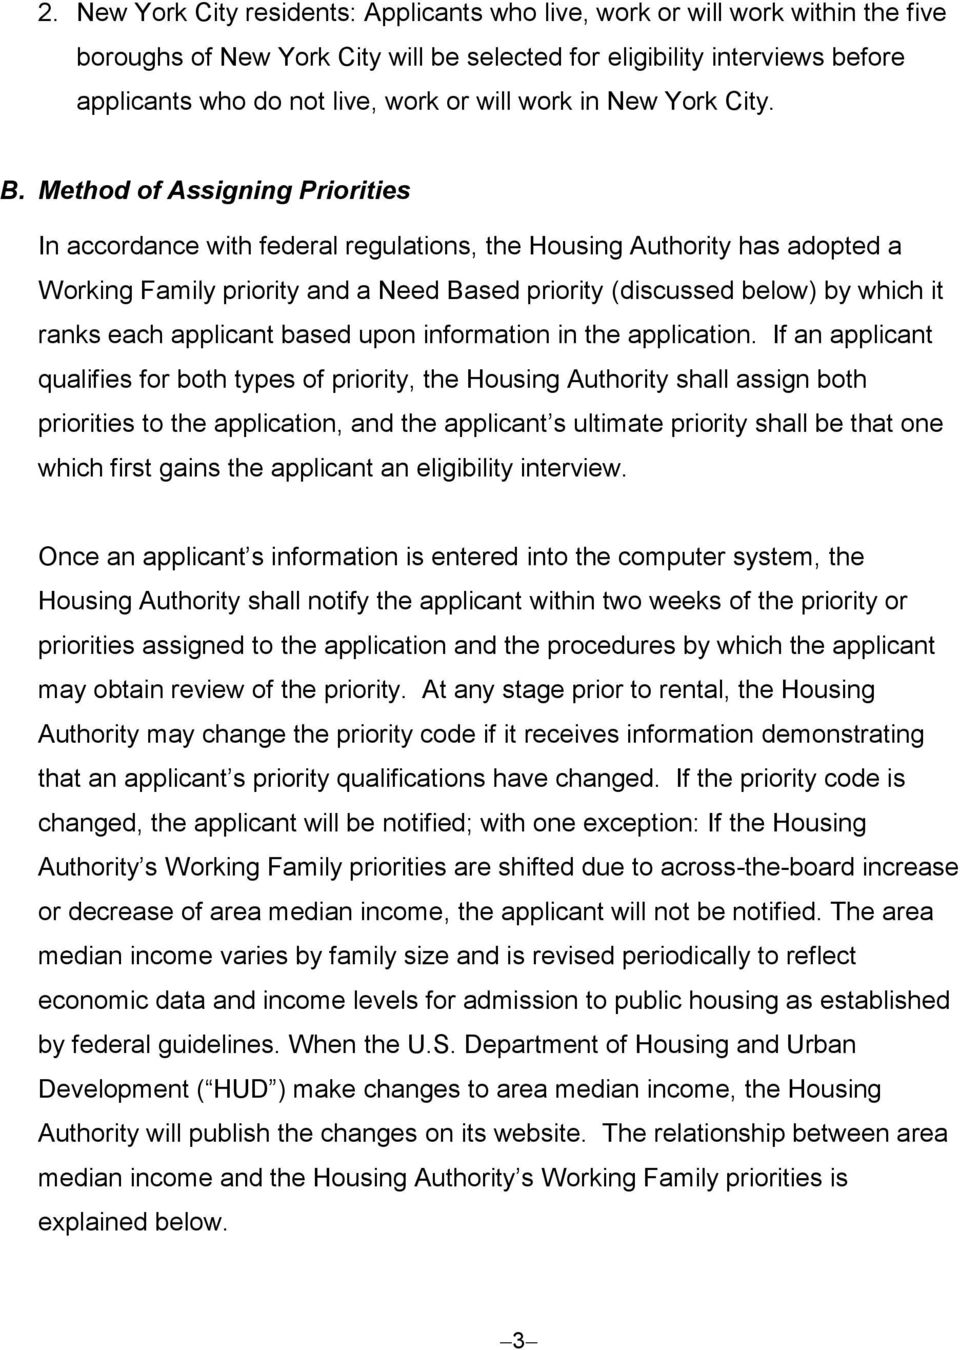 Method of Assigning Priorities In accordance with federal regulations, the Housing Authority has adopted a Working Family priority and a Need Based priority (discussed below) by which it ranks each